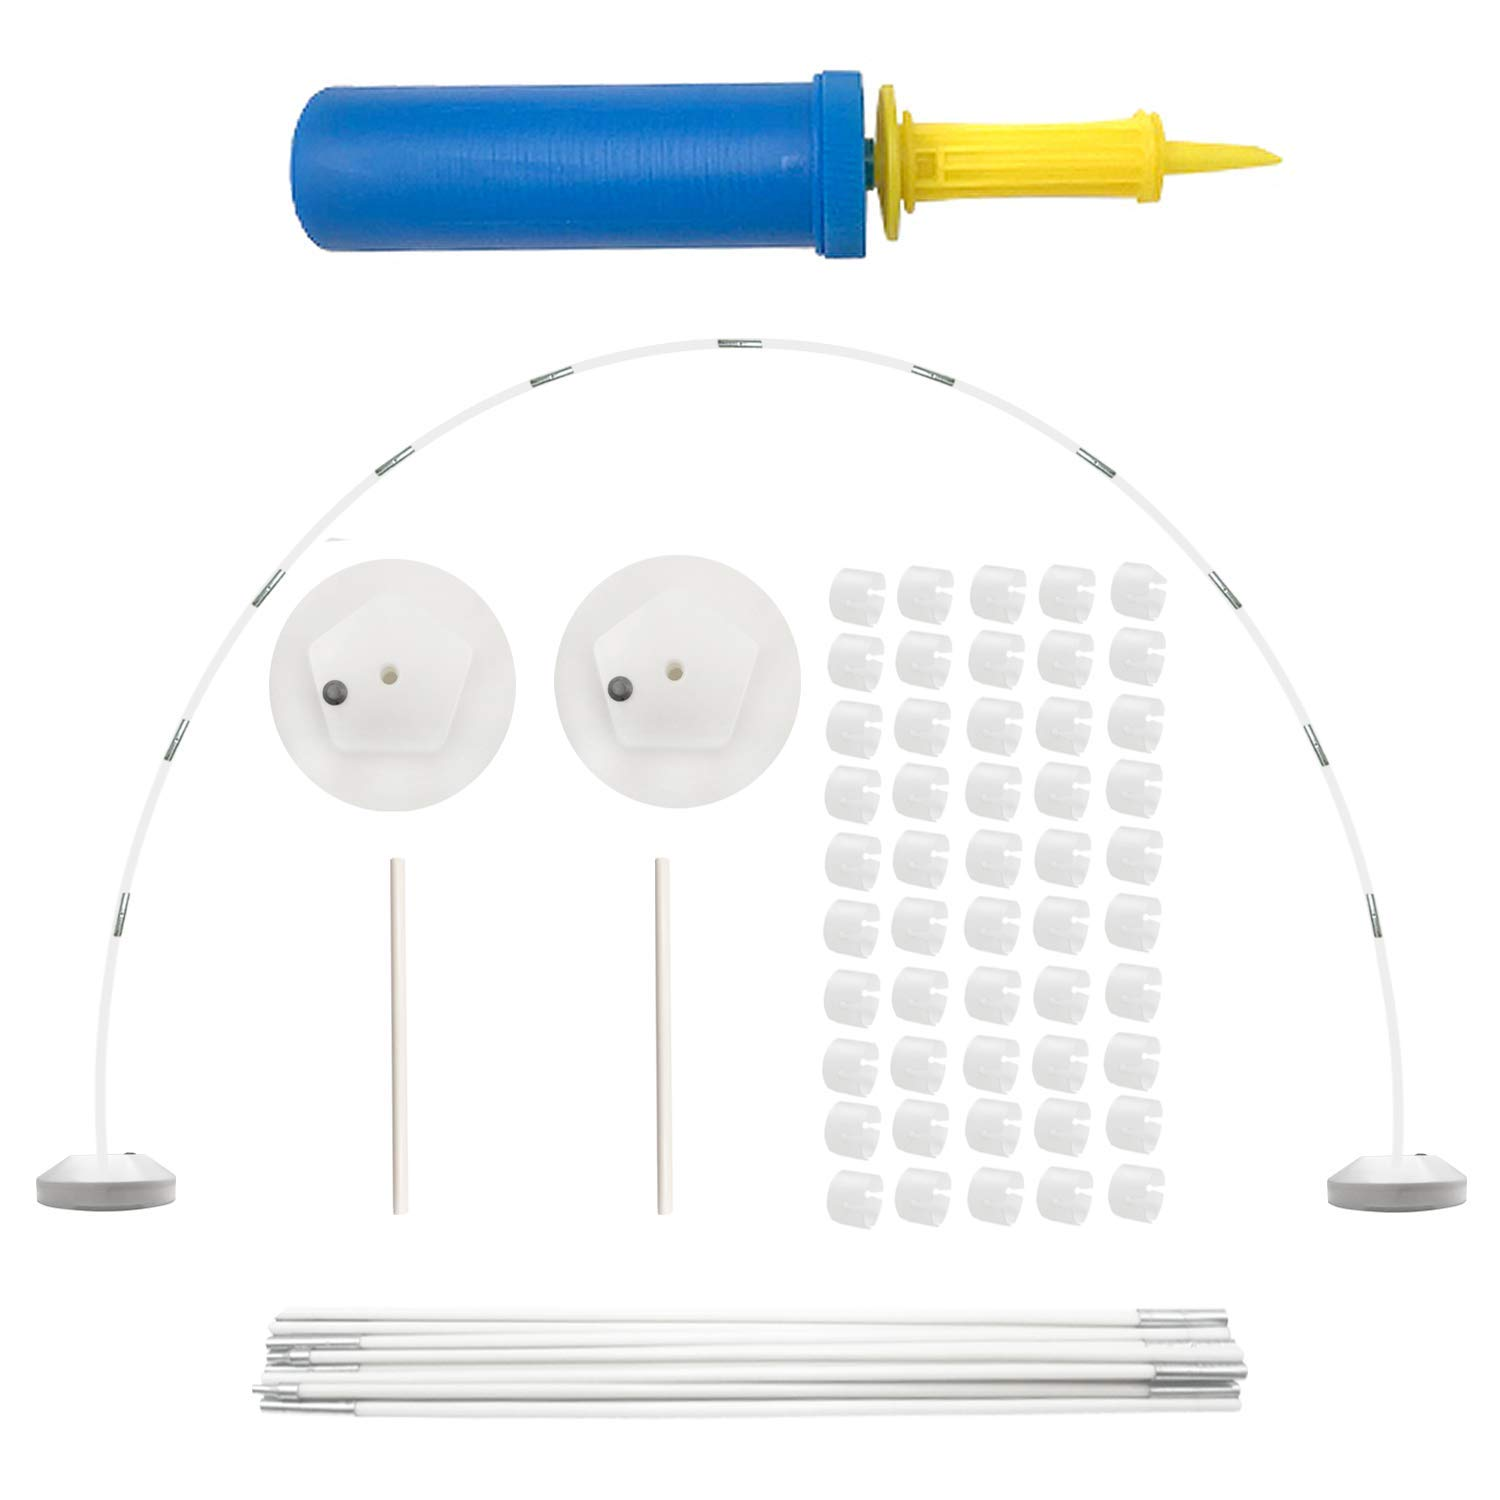 Balloon Arch Kit - Balloon Column Base and Pole Balloon Arch with Bases for Birthday Party Supplies Garden Decorations or Wedding(9.5FT Tall & 17FT Wide)